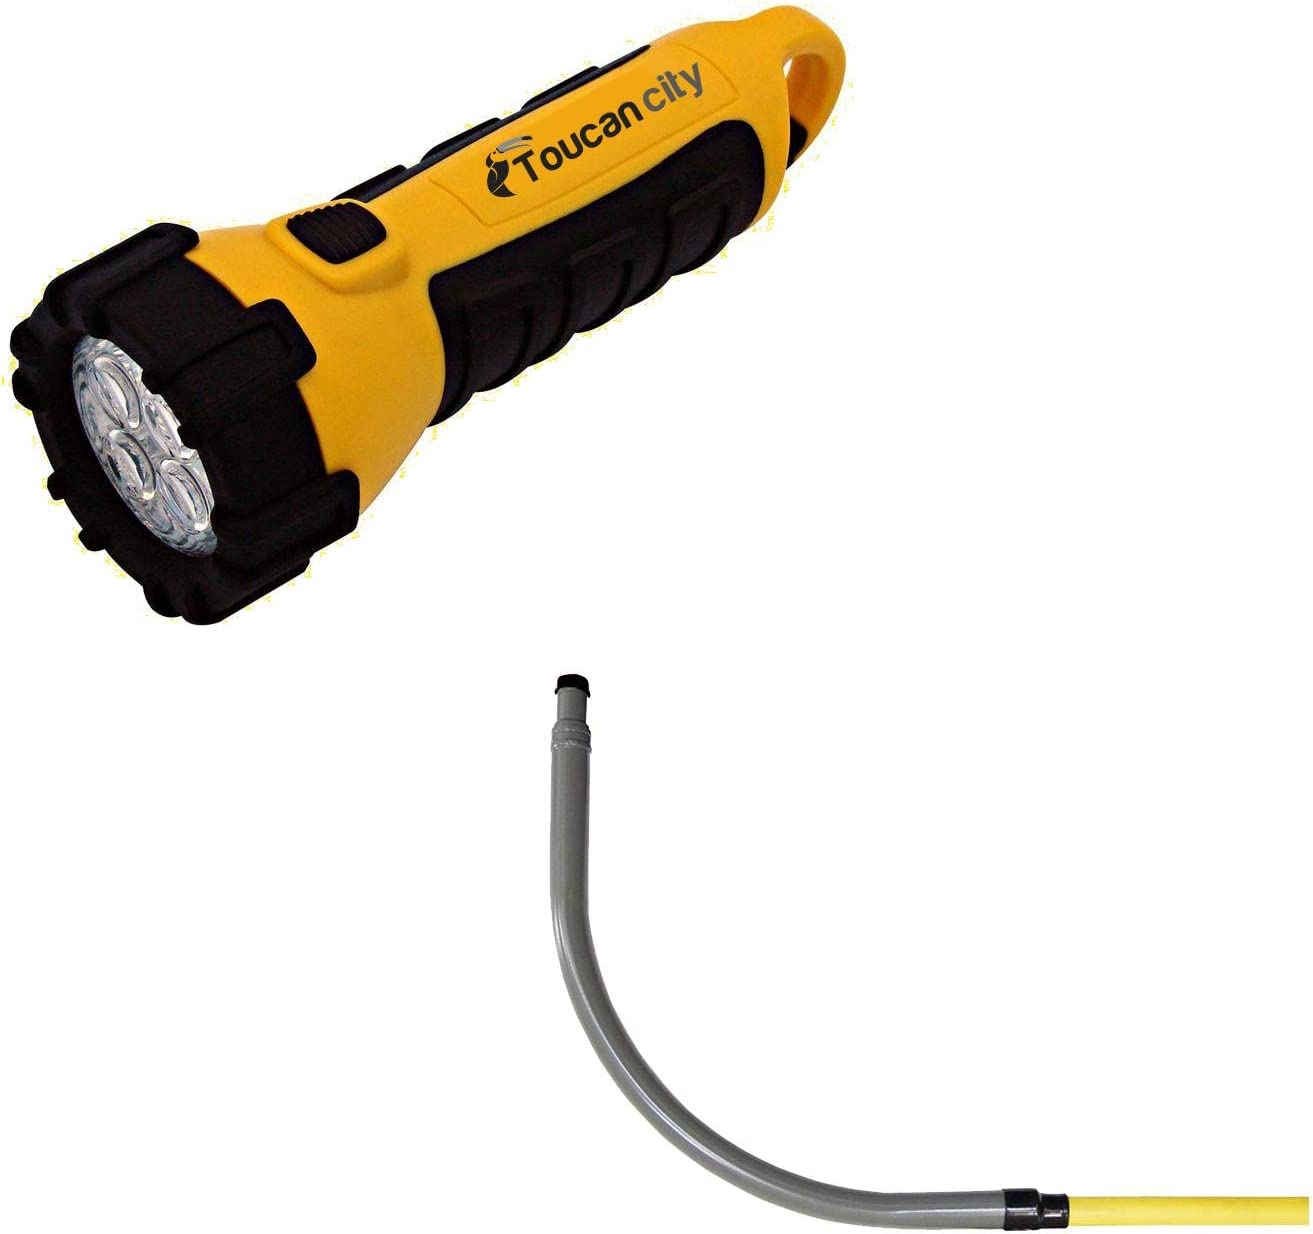 Toucan City LED Flashlight and HOME-FLEX 1-1/4 in. IPS Poly DR 11 to 1-1/4 in. MIP Underground Meter Riser Bent 18-440-012